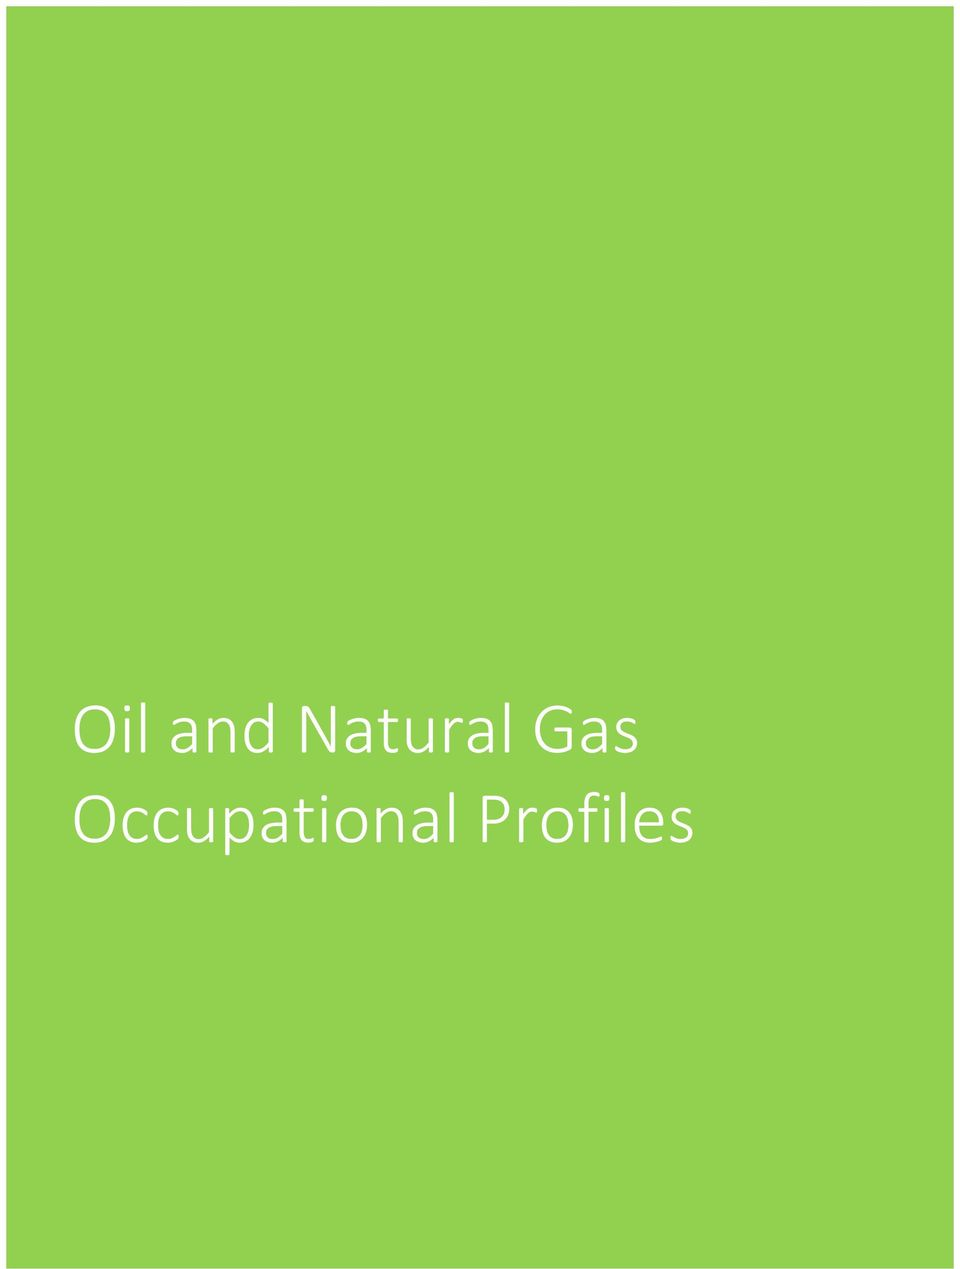 ethics in the oil and gas industry Ethical oil: the case for canada's oil sands is a book written by canadian   freedom from oppression) the canadian petroleum industry is heads above  other.